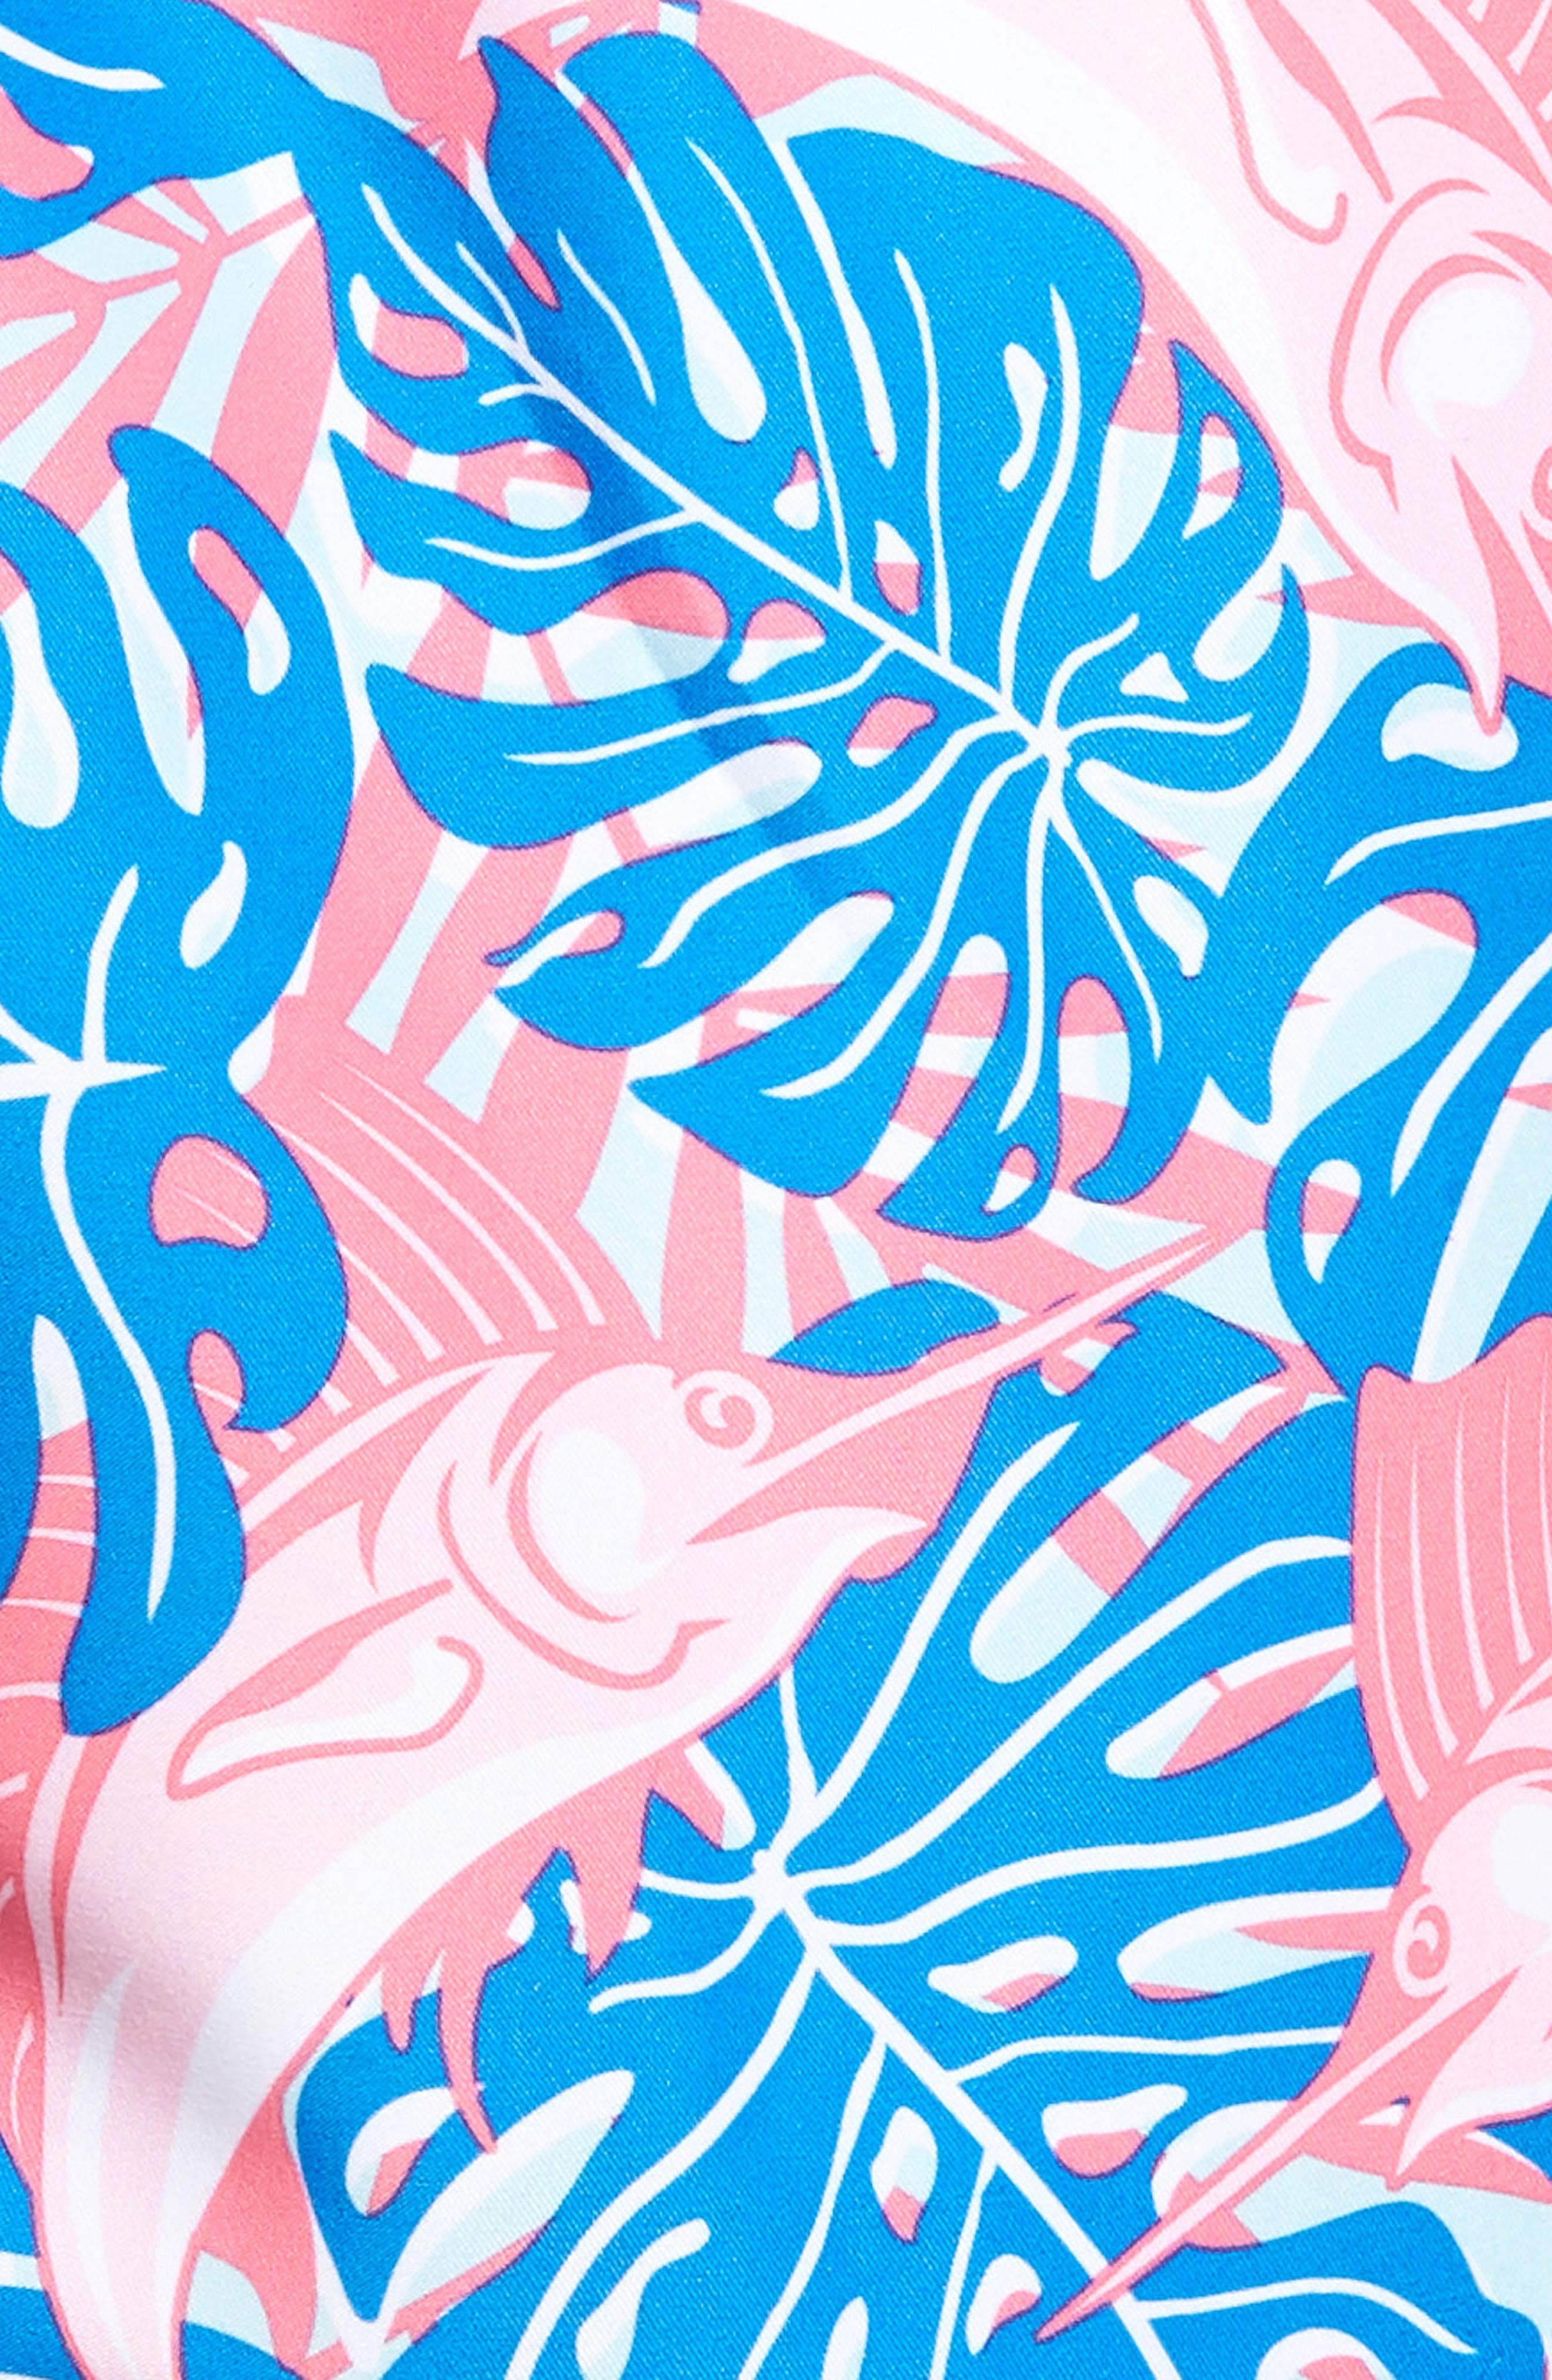 Sailfish & Leaves Chappy Swim Trunks,                             Alternate thumbnail 5, color,                             Azure Blue